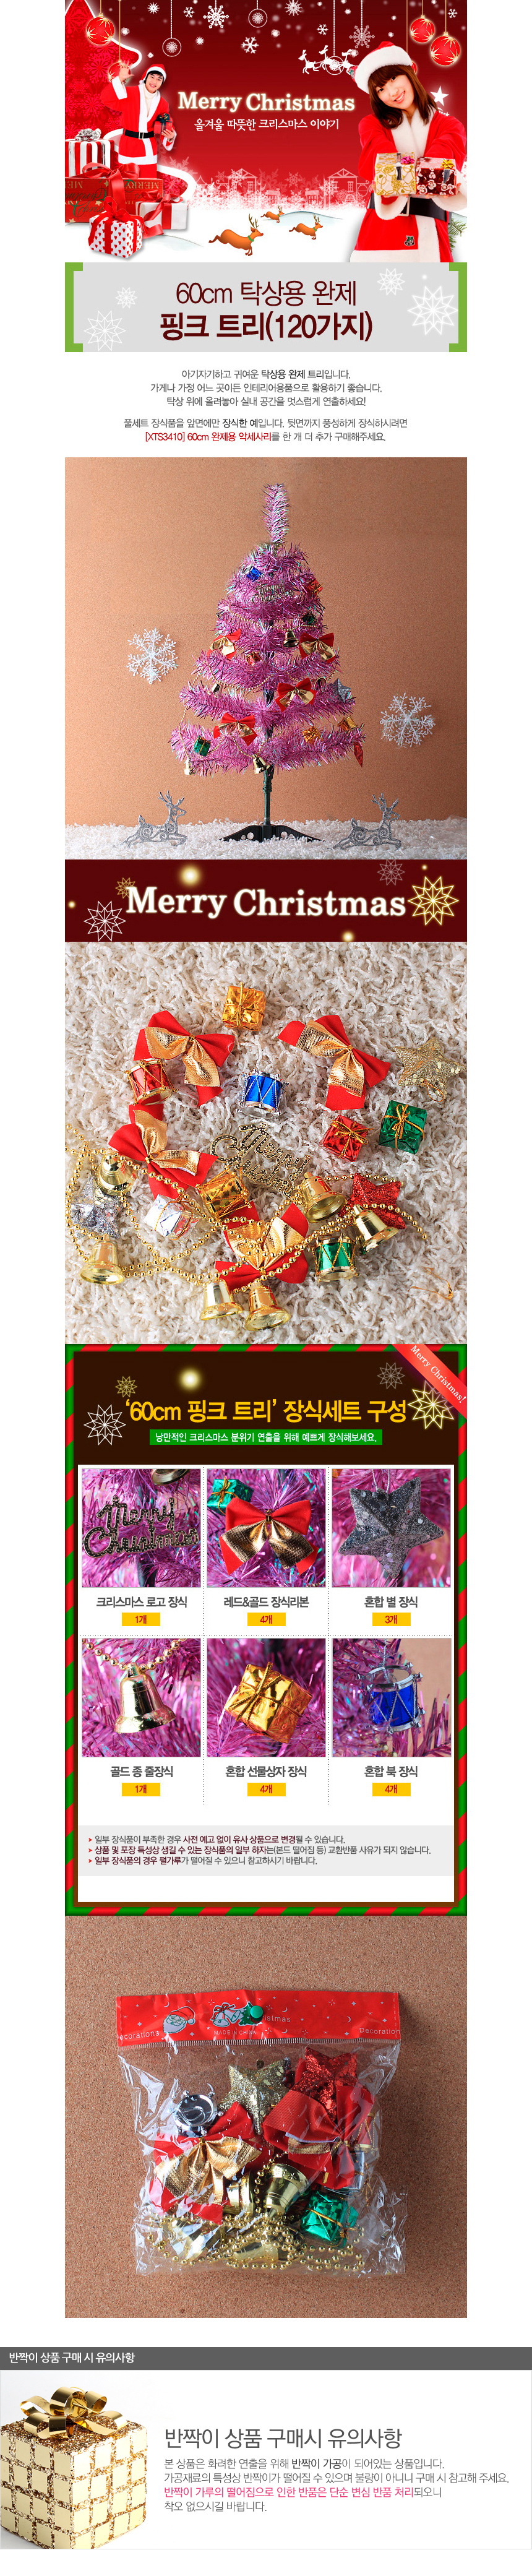 [ WINEQOK ] Christmas Goods / Desktop Completed Pink Glitter Tree